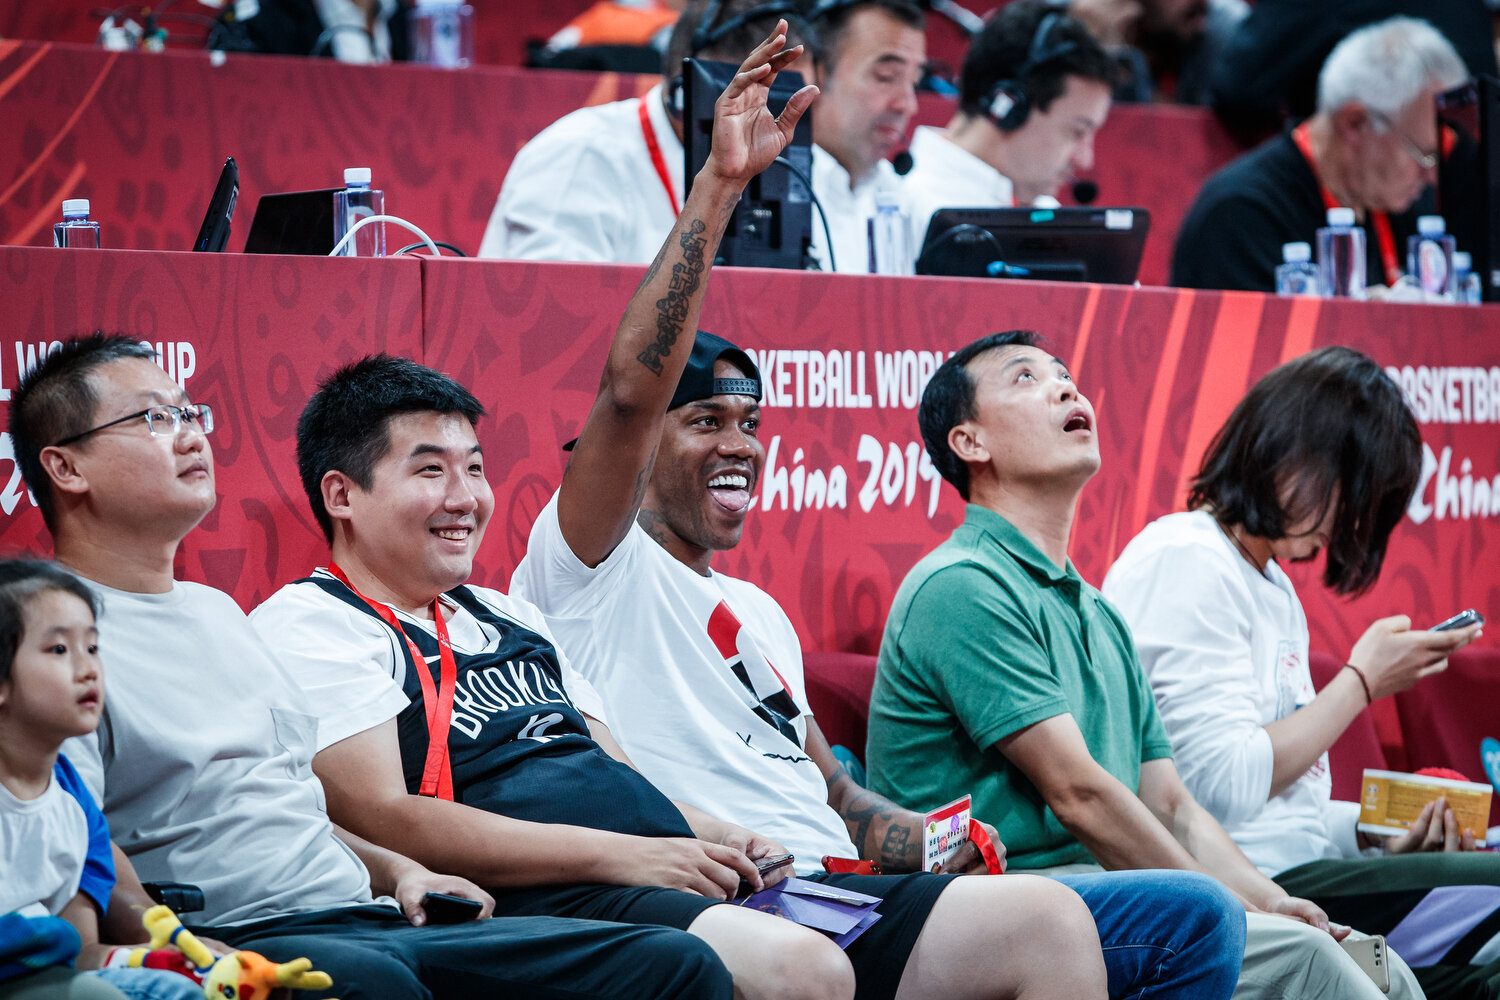 Stephon Marbury, legendary point guard from Coney Island Brooklyn, NY enjoys the games courtside during the FIBA Basketball World Cup. All rights reserved (Mandatory photo credit: Jon Lopez / FIBA )